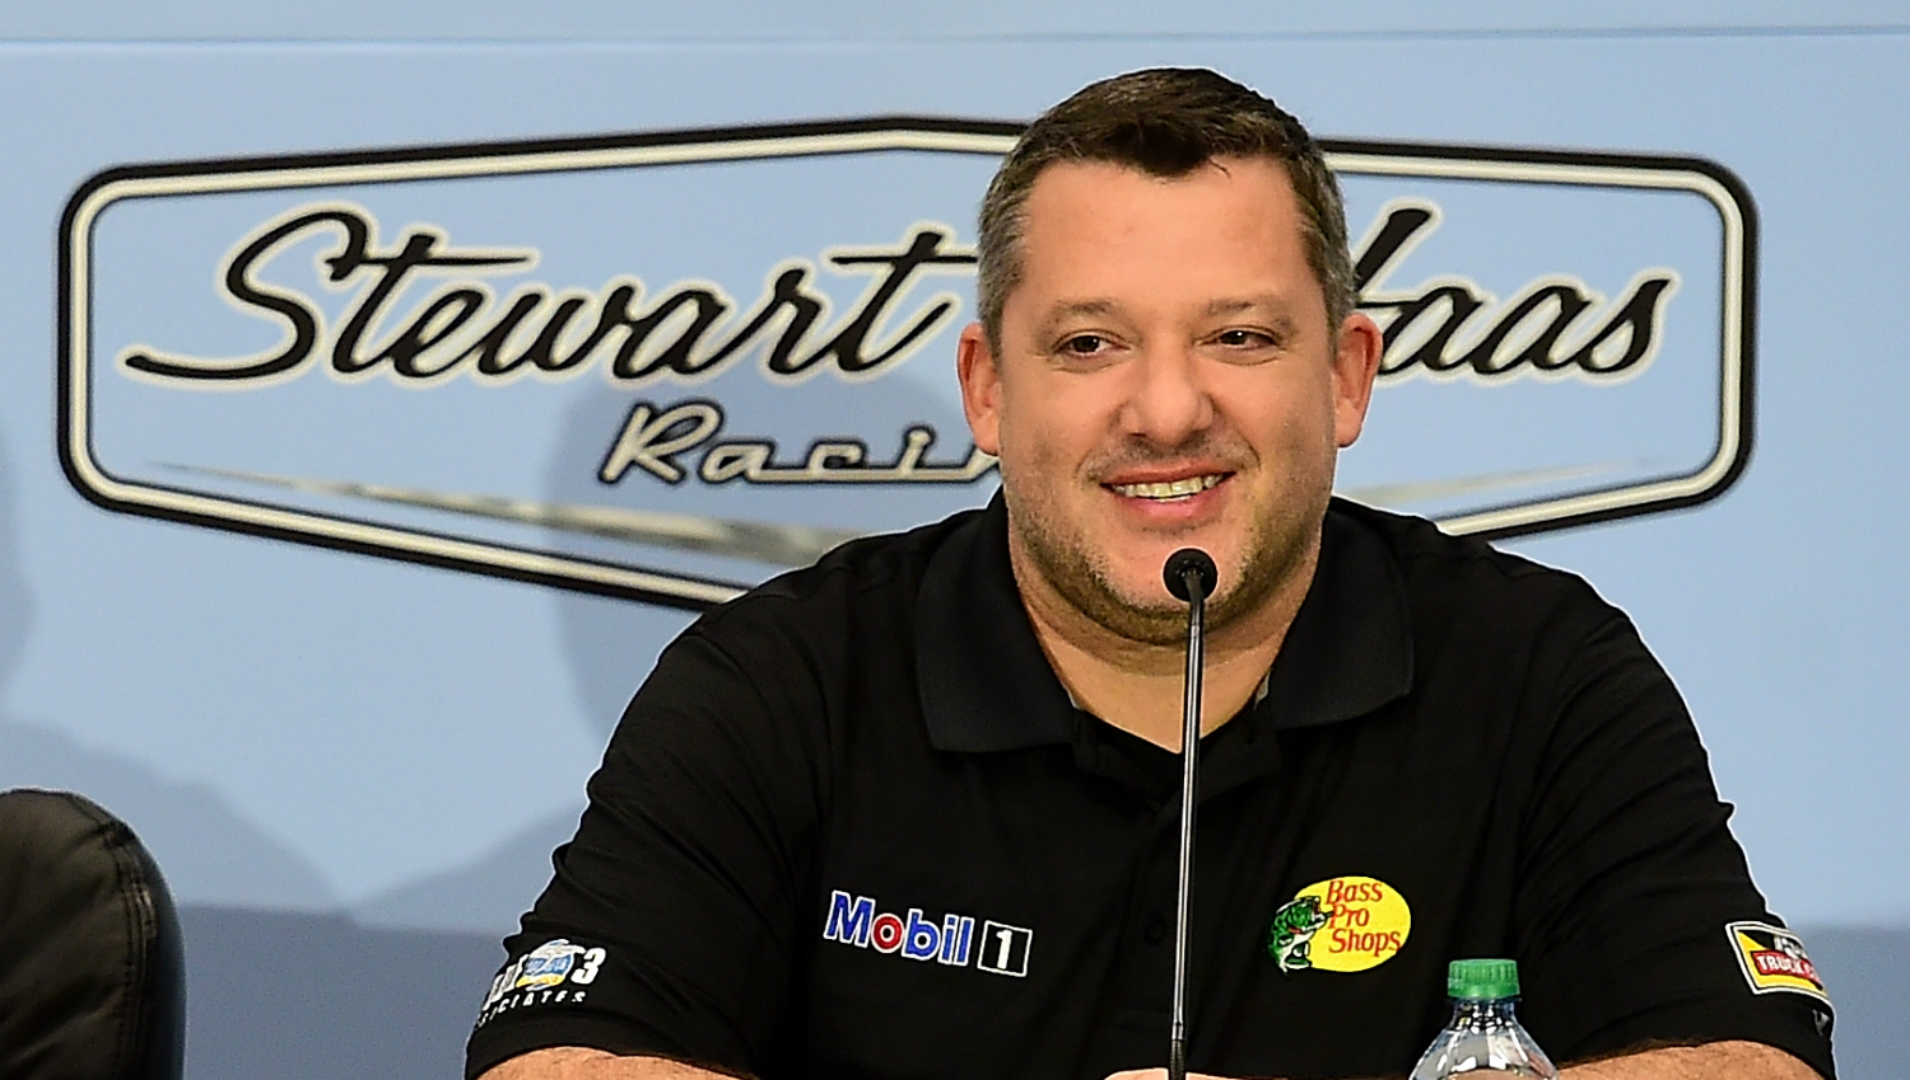 Woman charged with bizarrely stalking Tony Stewart, family over autograph snub